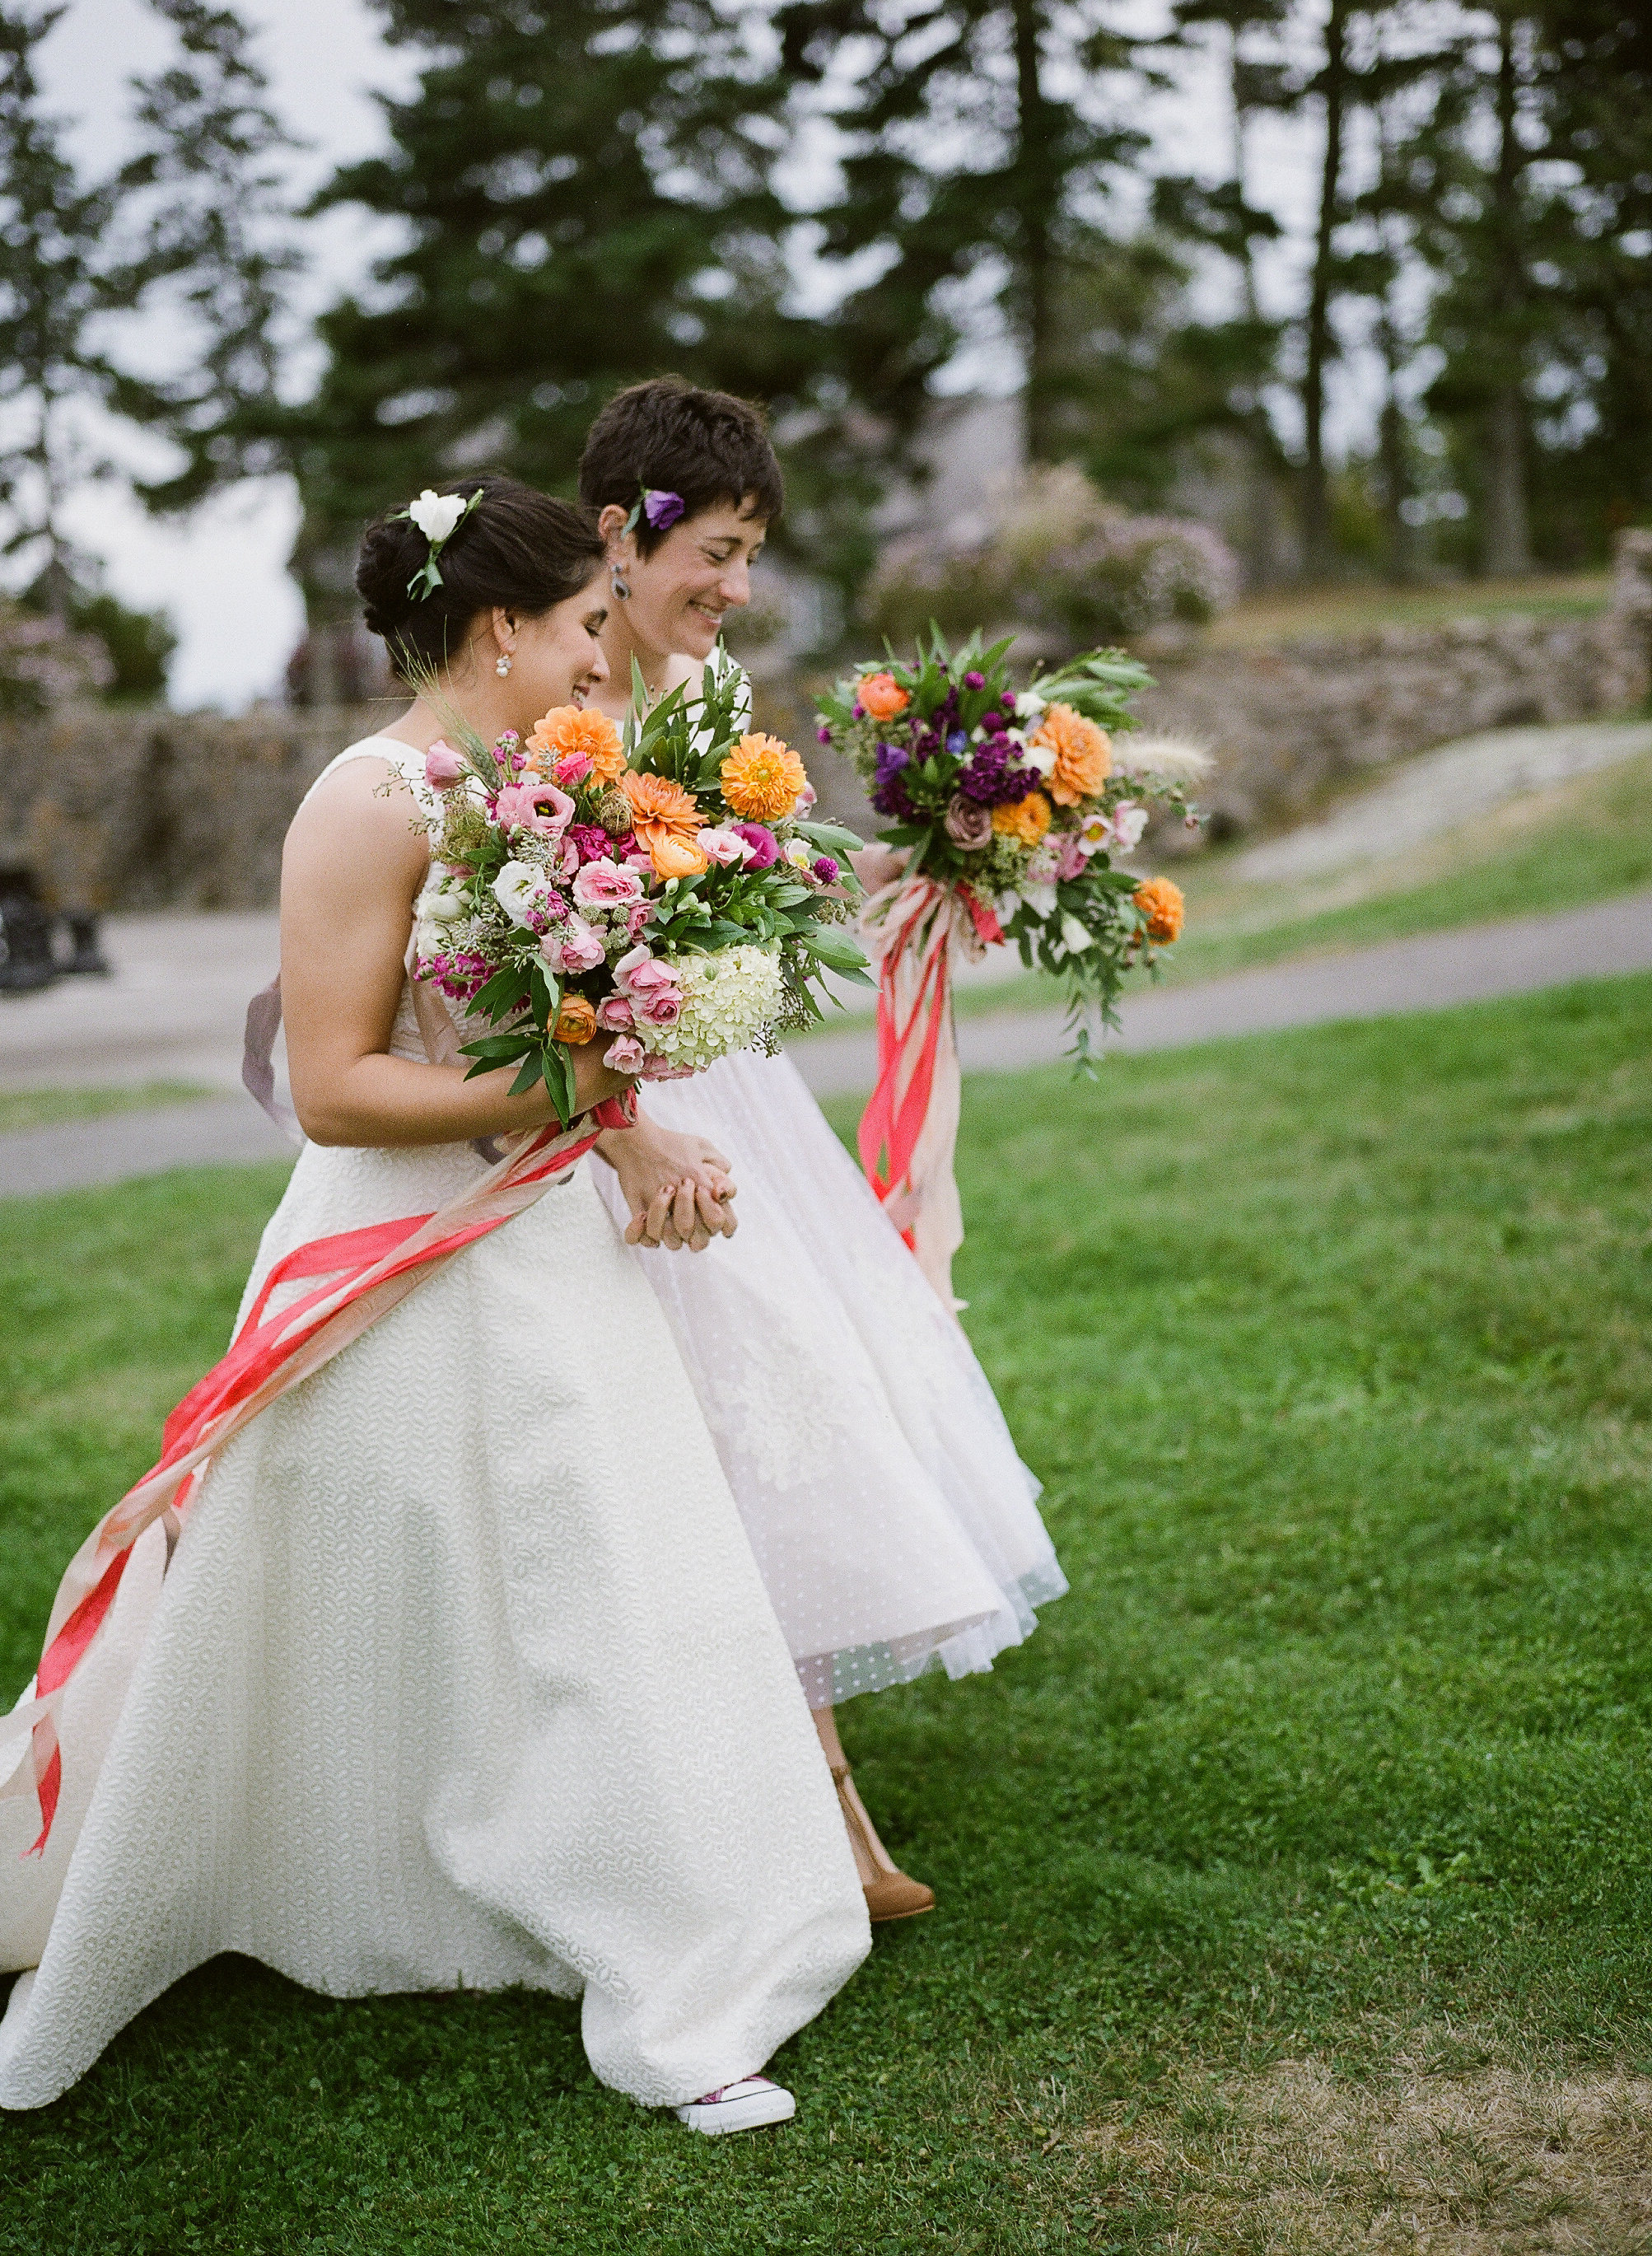 Watershed_Floral_Newagen_Southport_Maine_Coastal_Wedding_369.jpg